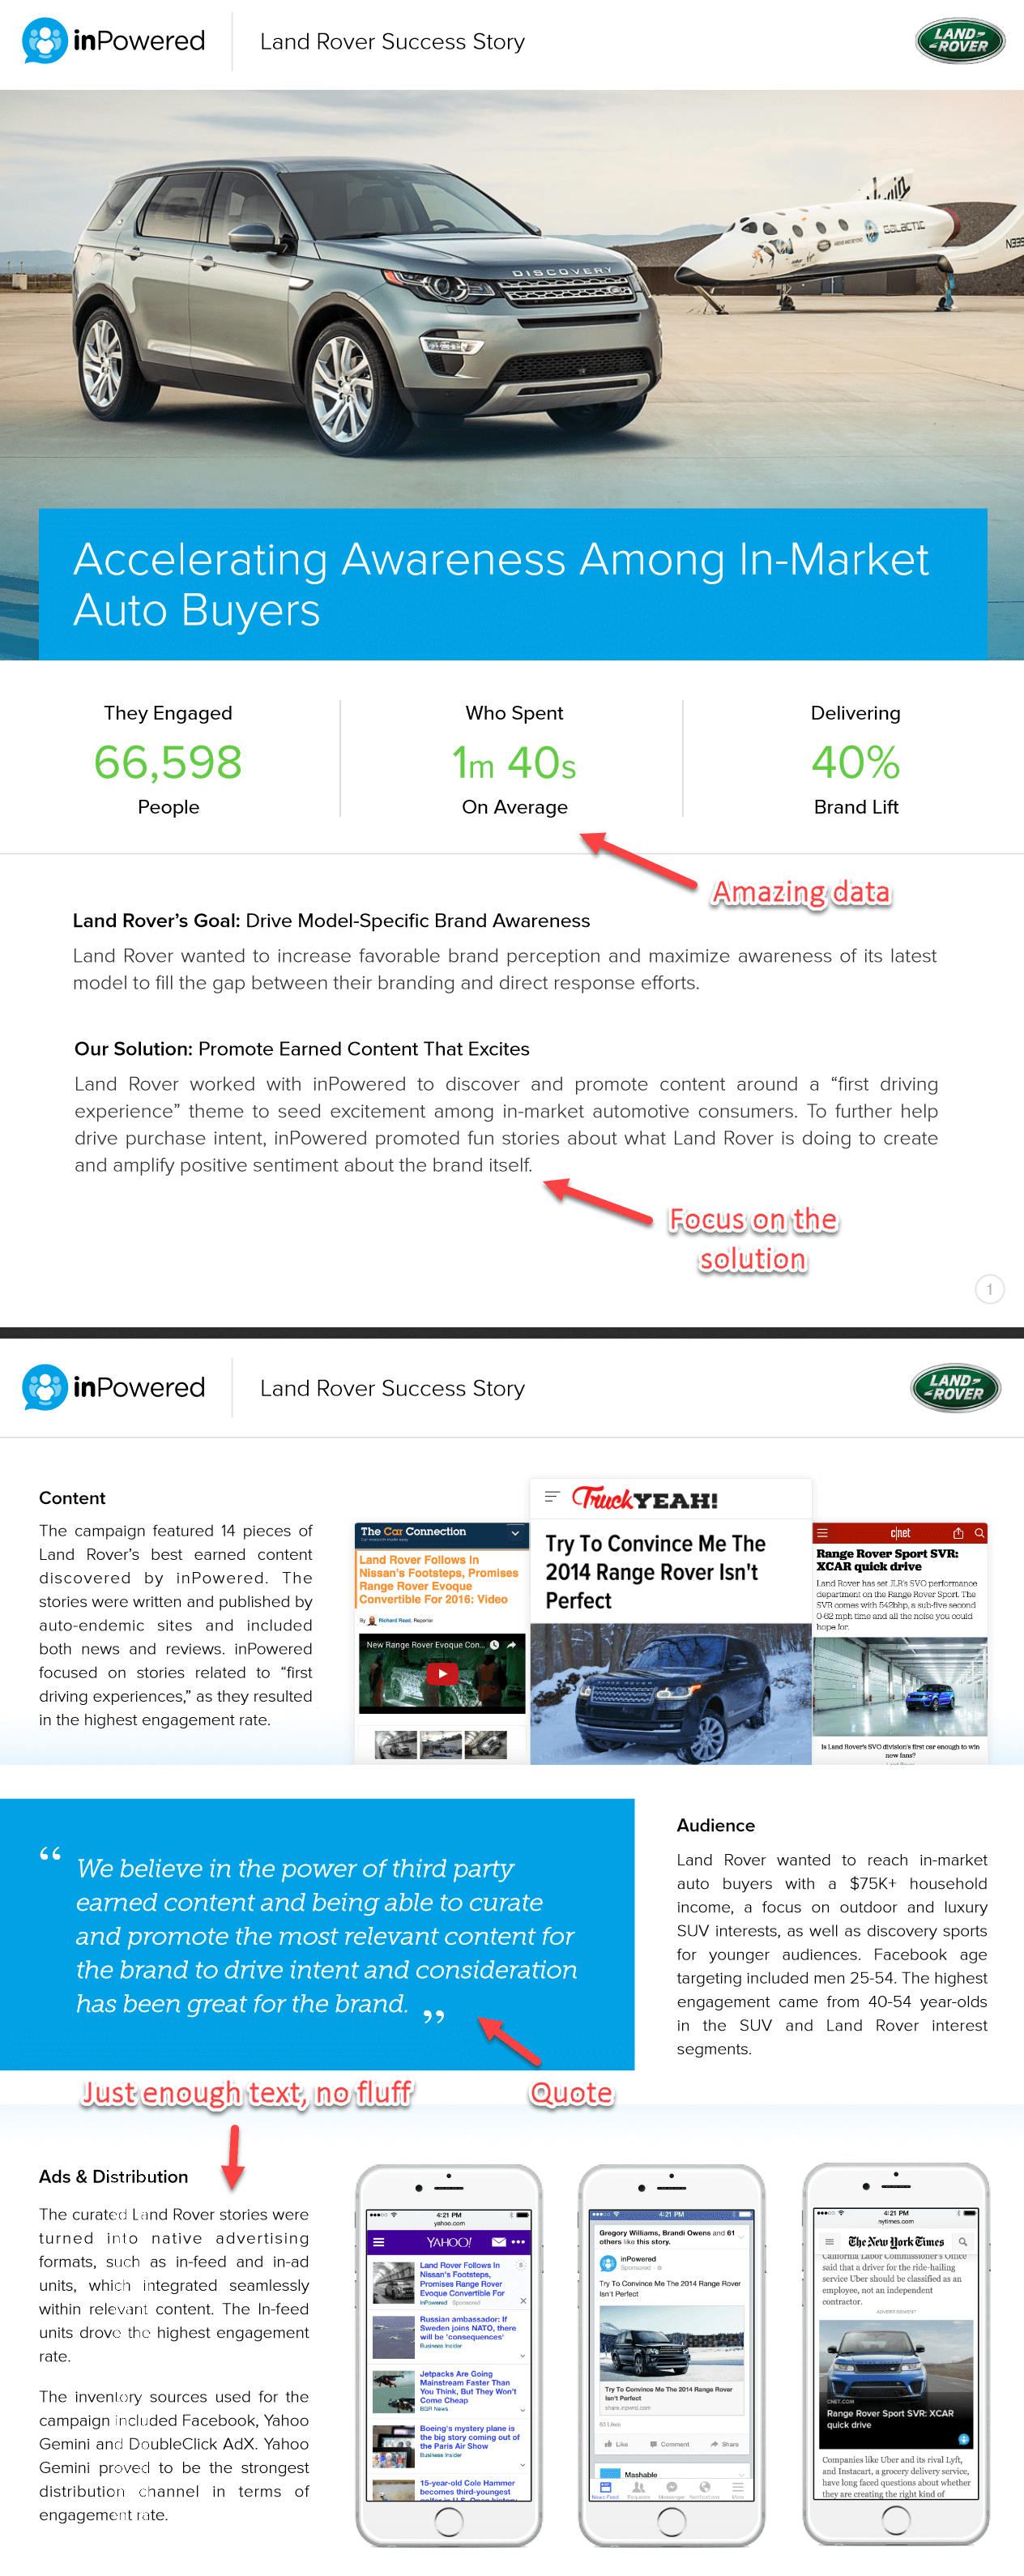 inPowered case study example